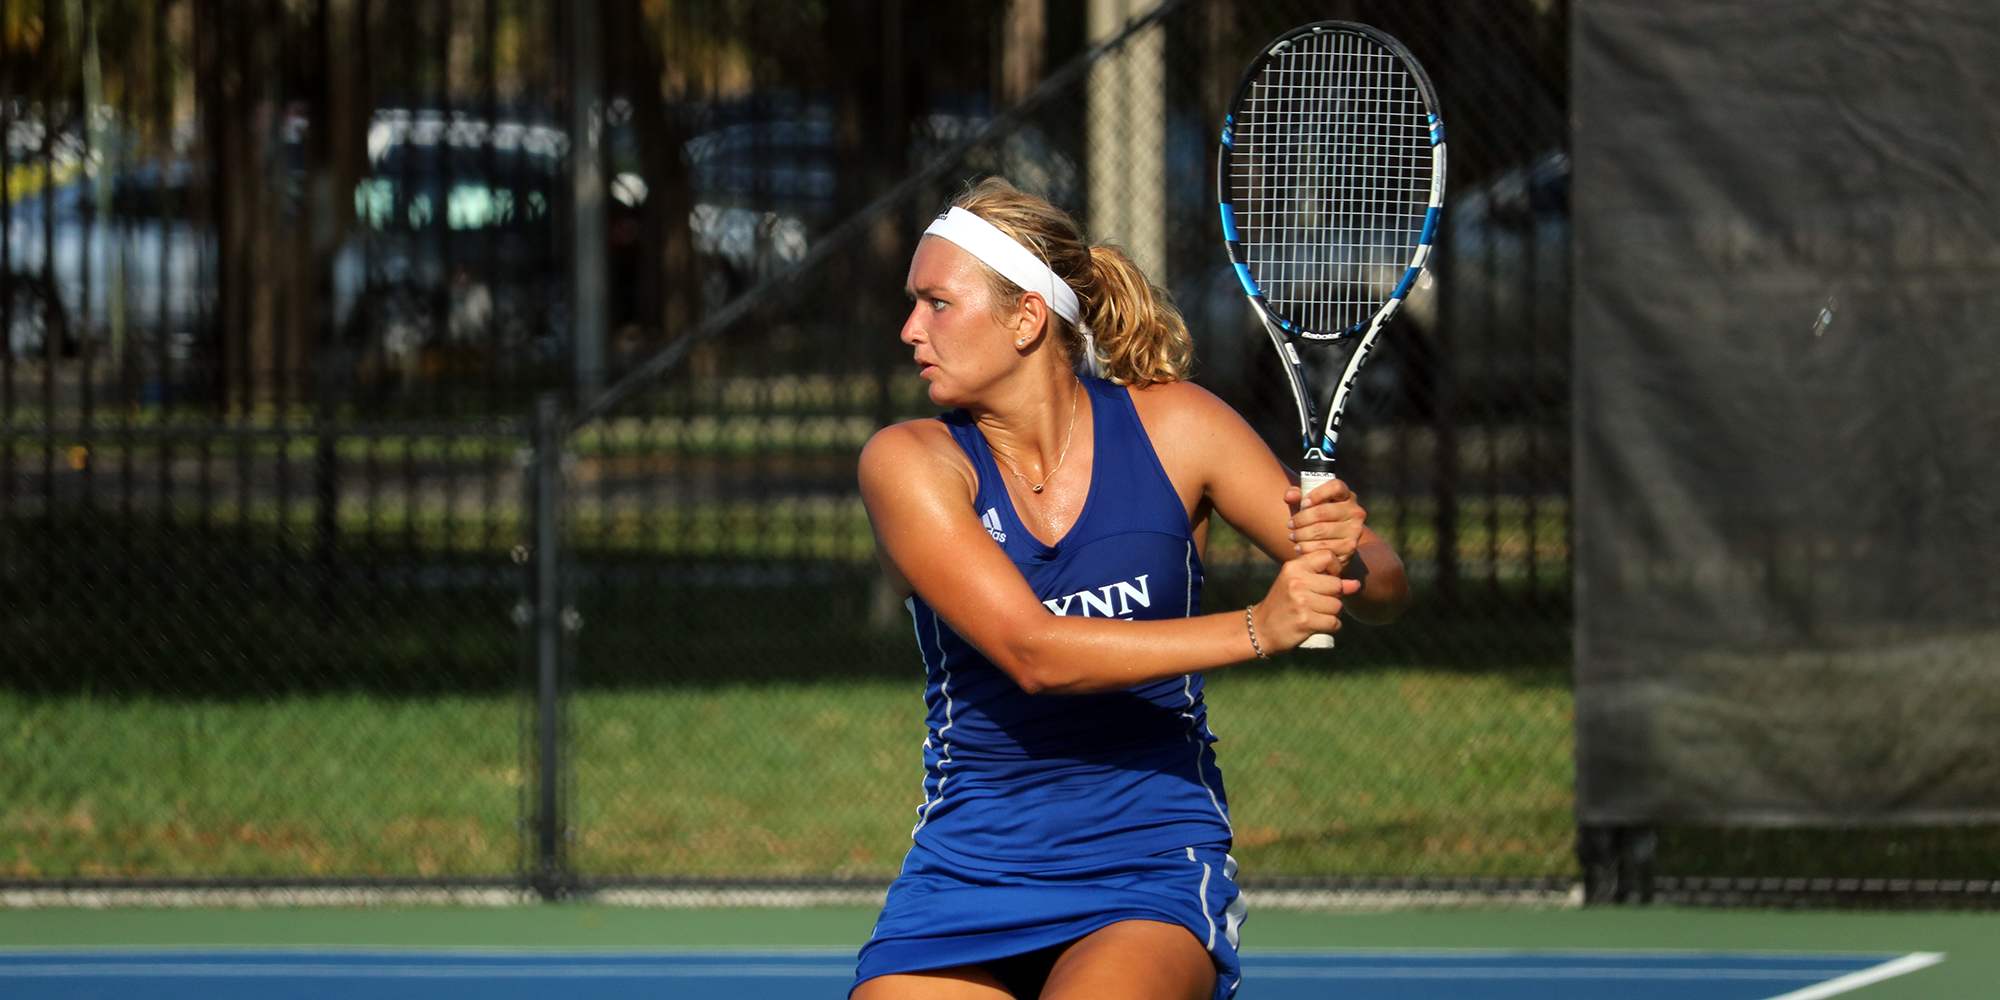 Women's Tennis Starts Strong at ITA Oracle Cup